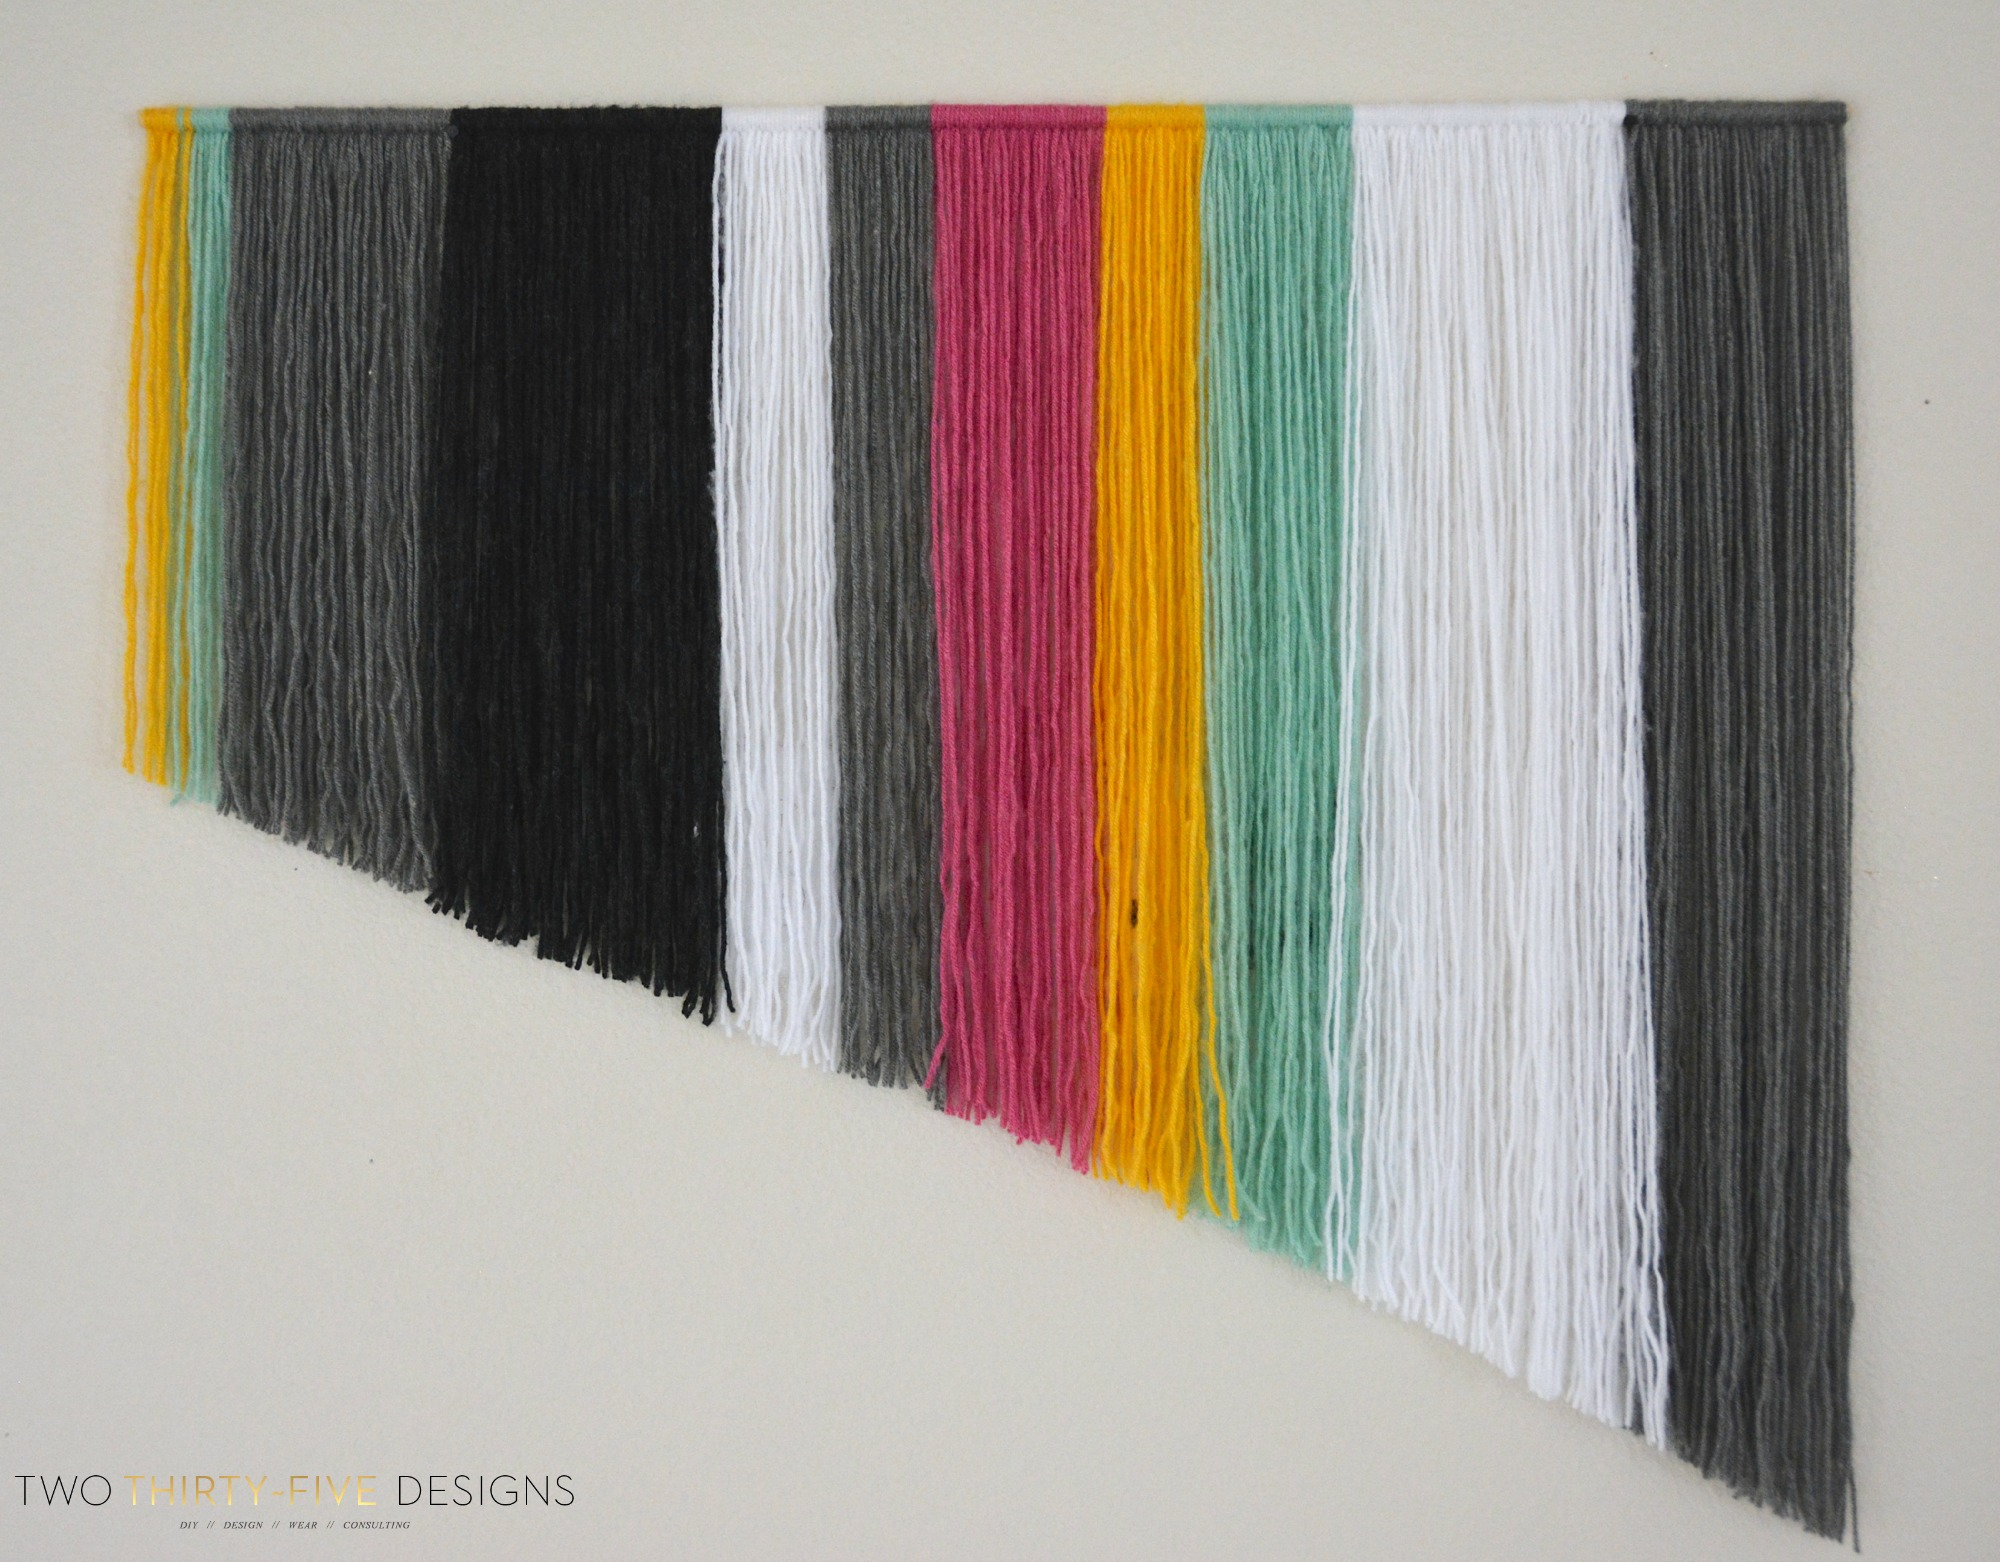 DIY Yarn Wall Art , Two Thirty,Five Designs